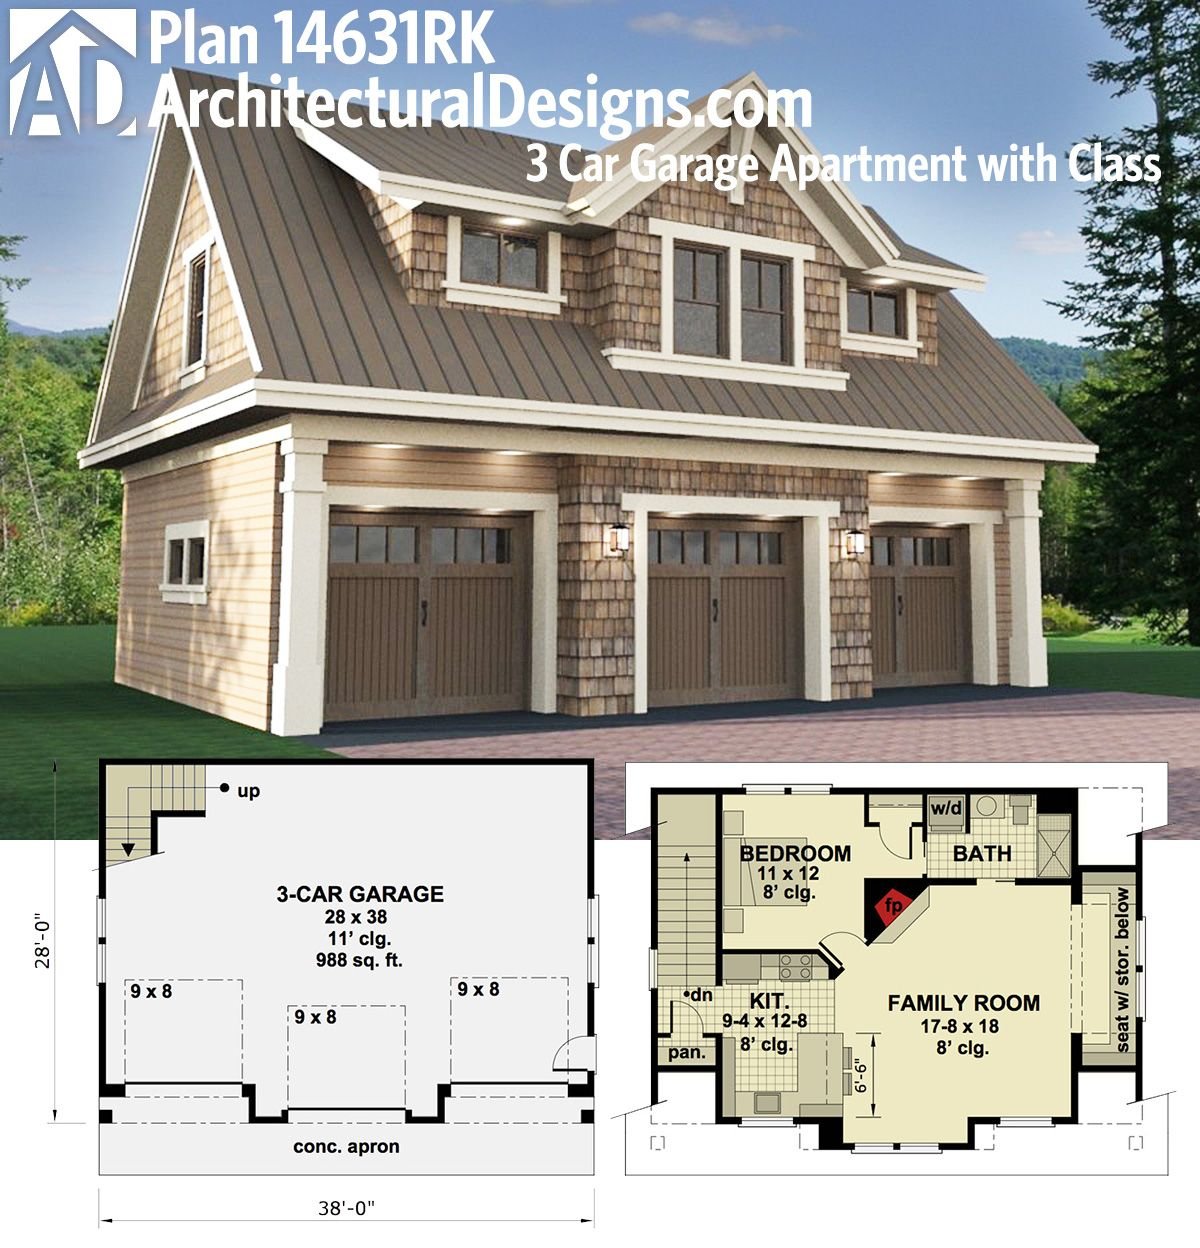 Plan 14631rk 3 car garage apartment with class carriage for 5 car garage